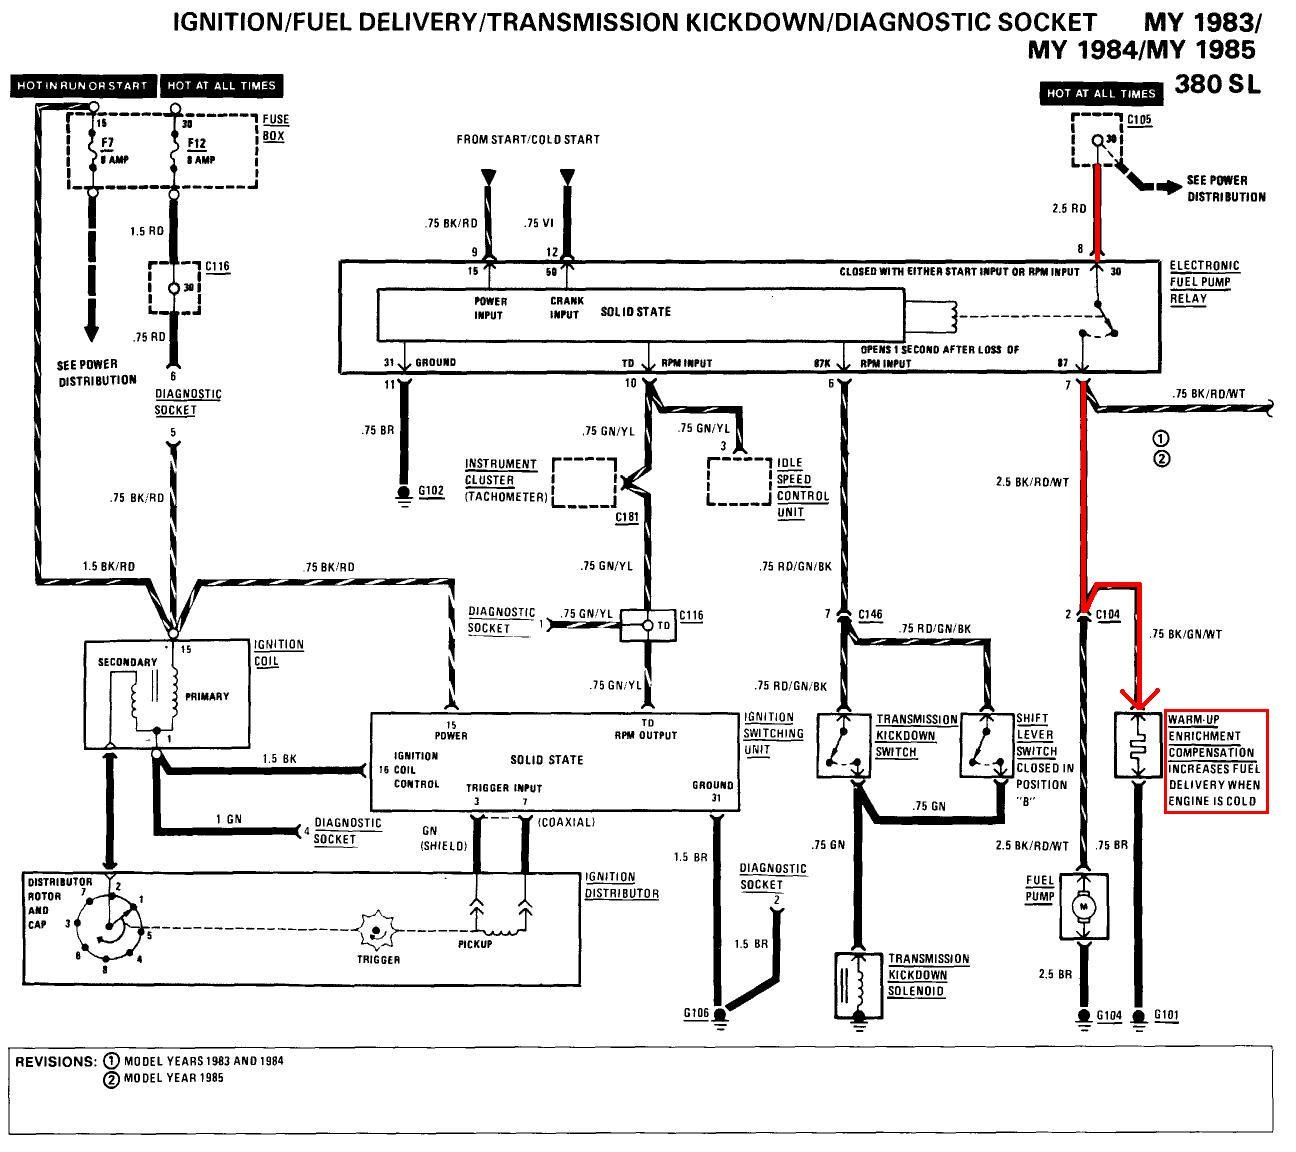 3000gt wiring diagram images sel motor relay on where is the fuse box in a ford fiesta zetec